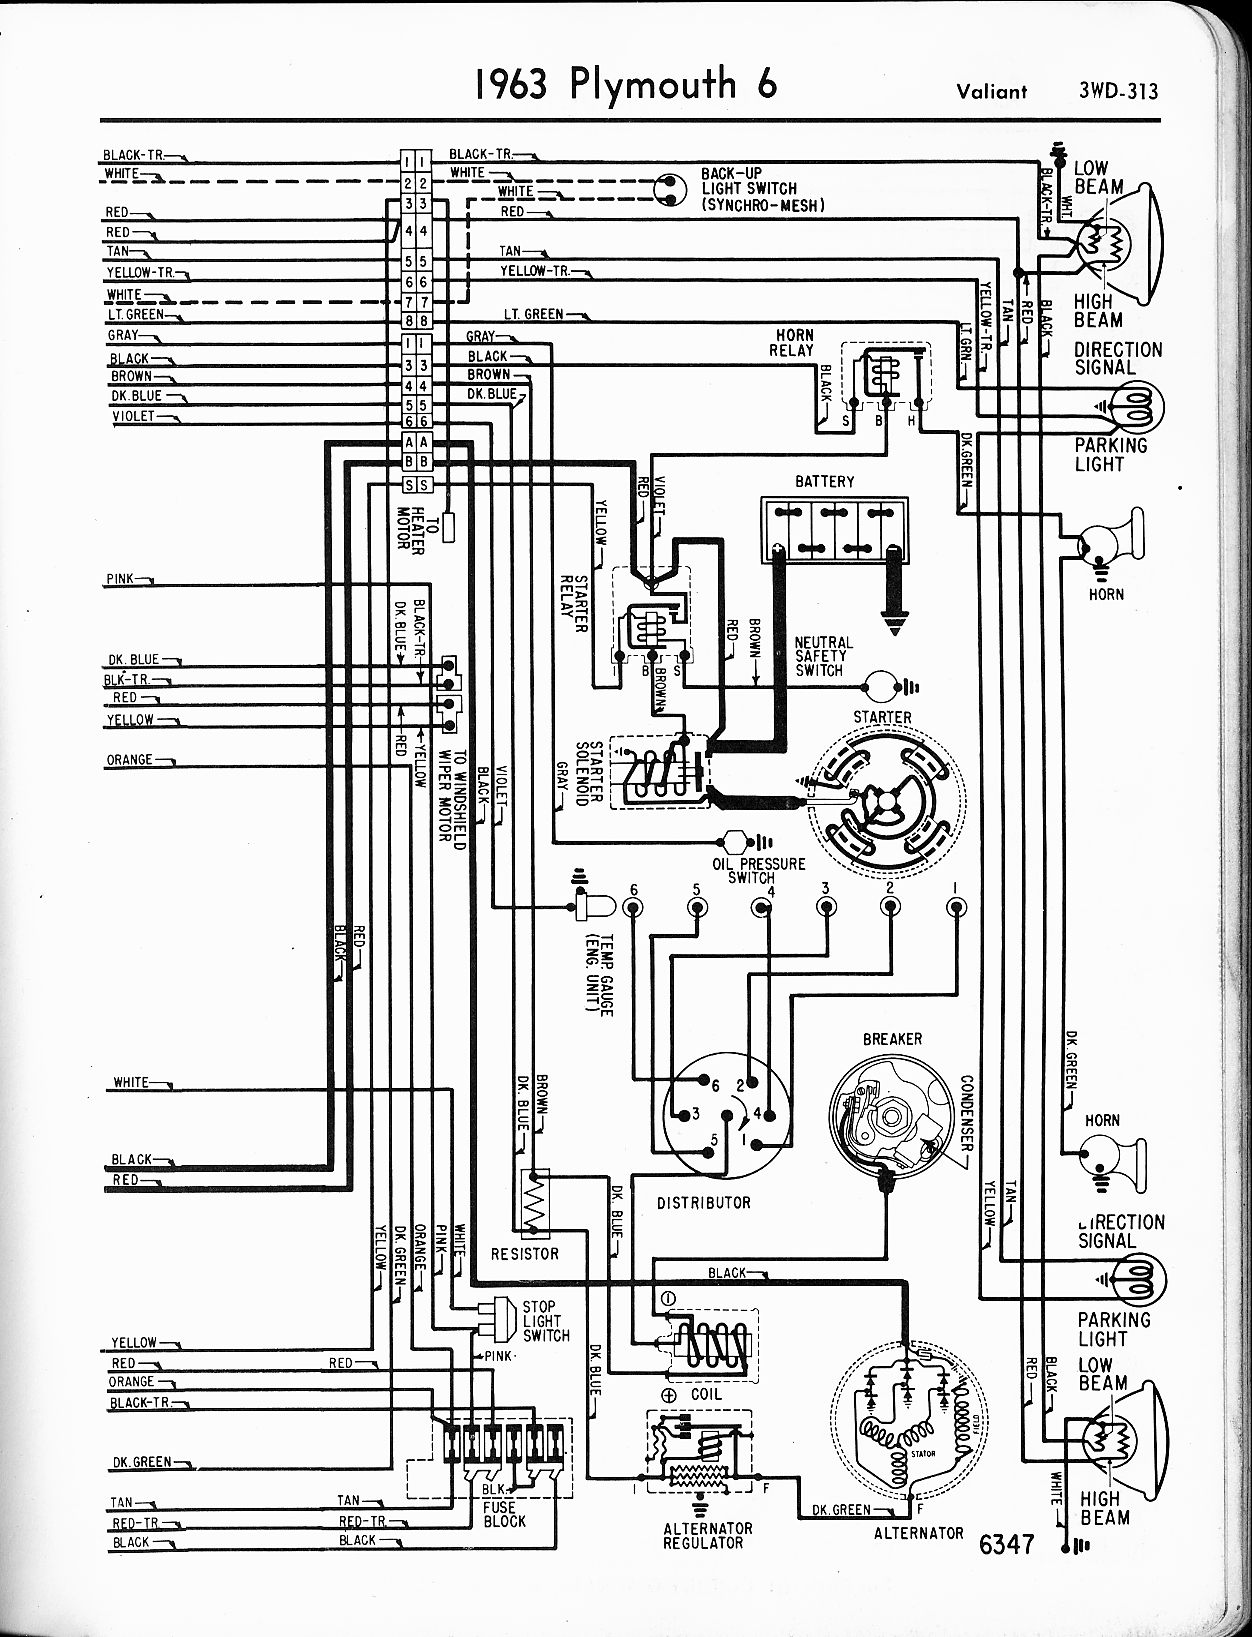 MWire5765 313 1956 1965 plymouth wiring the old car manual project 1954 plymouth belvedere wiring diagram at crackthecode.co